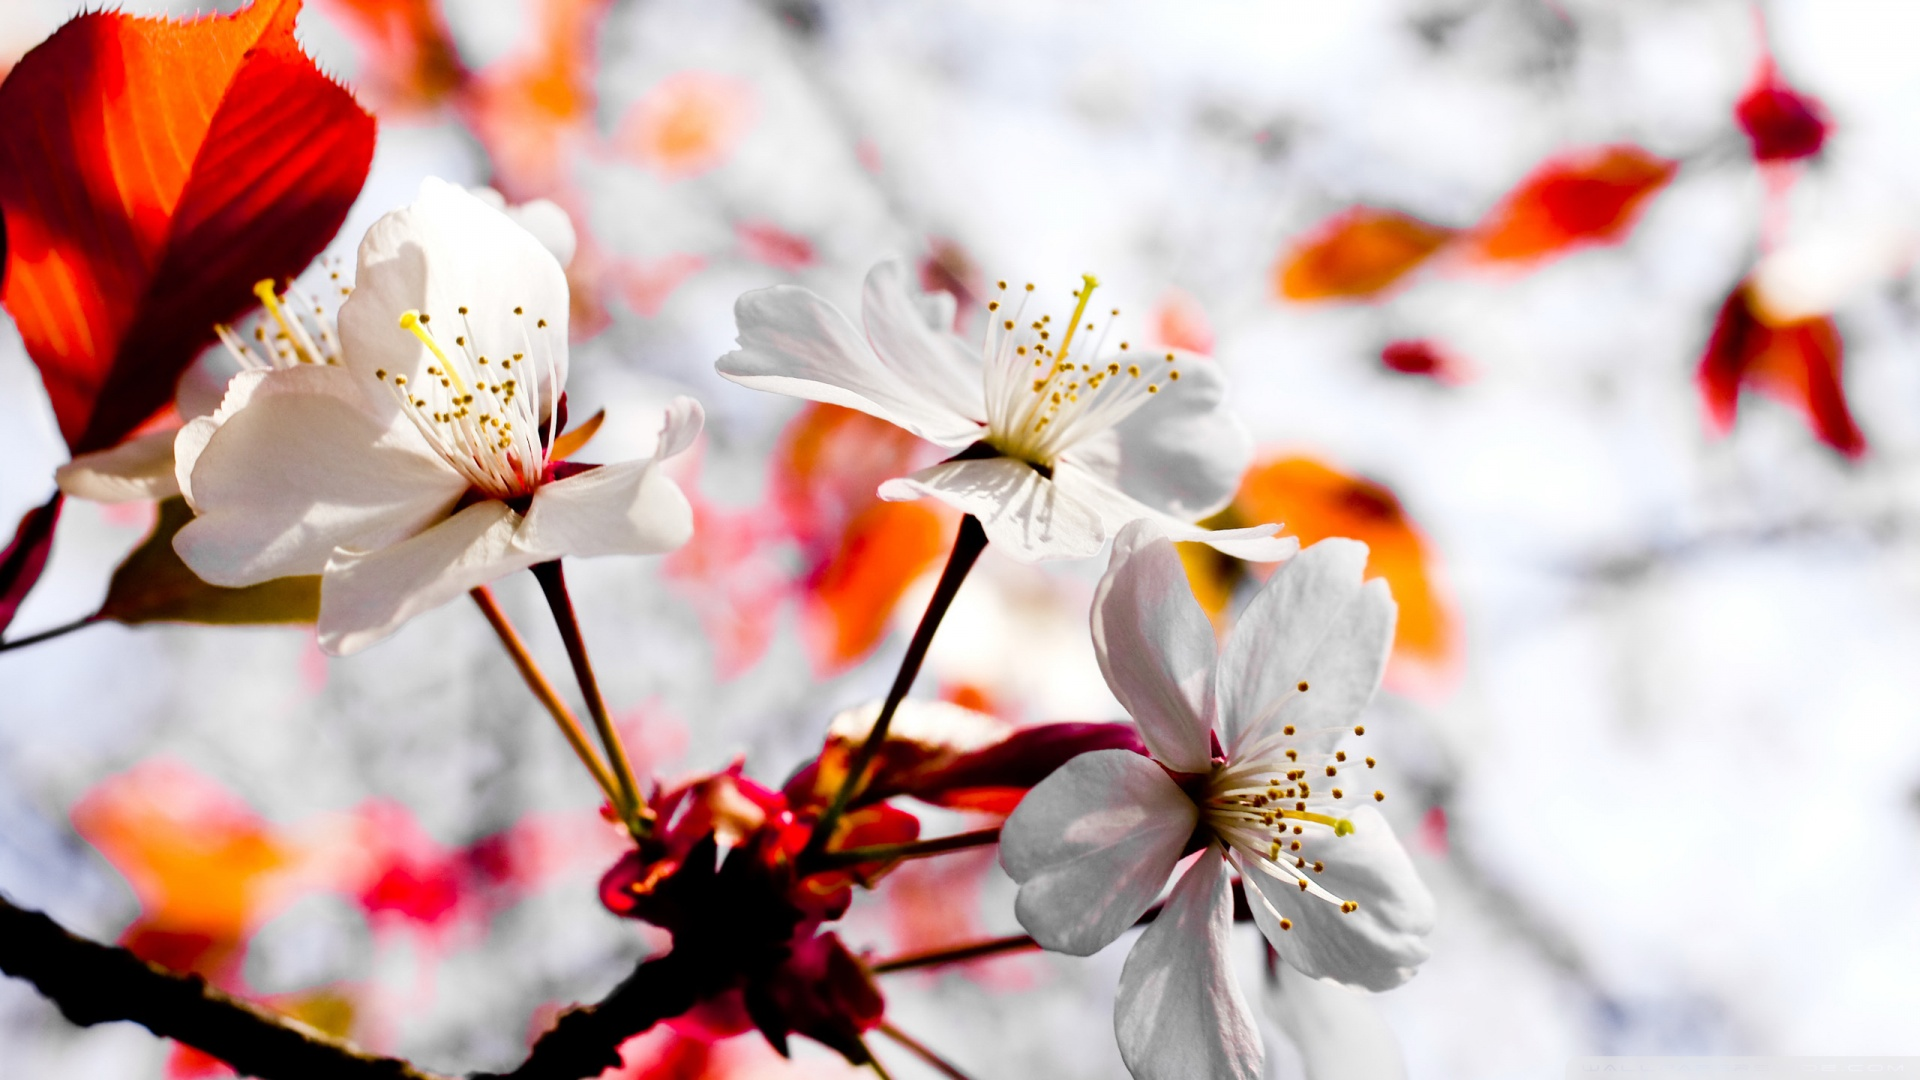 Spring Season Flowers Hd Free Wallpapers